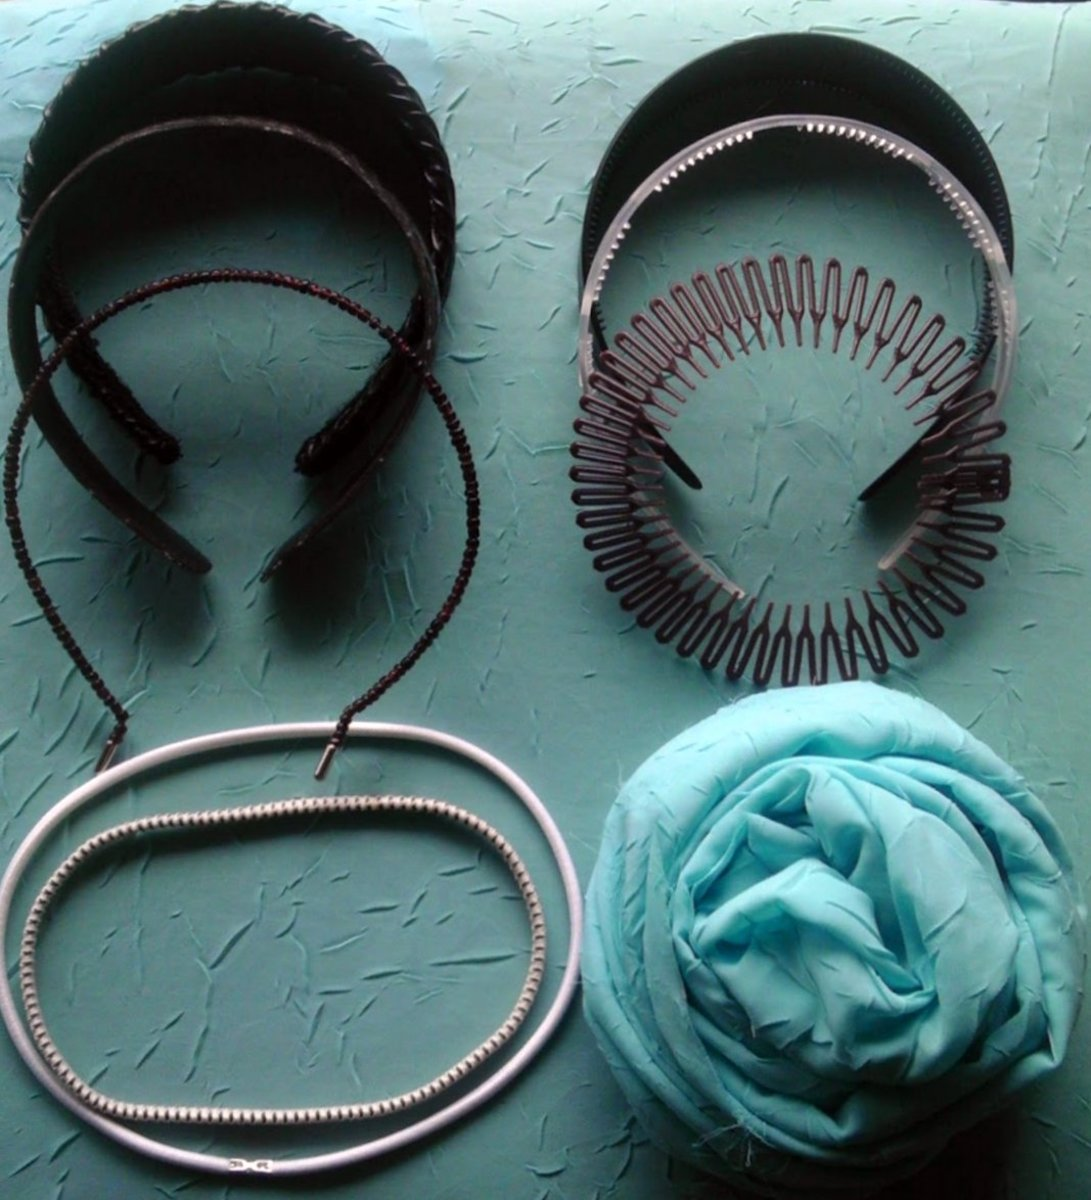 A selection of modern headbands. Clockwise from left: pleather, faux alligator, beaded wire, plastic with teeth, patterned with teeth, comb coil, elastic, elastic with grips, scarf